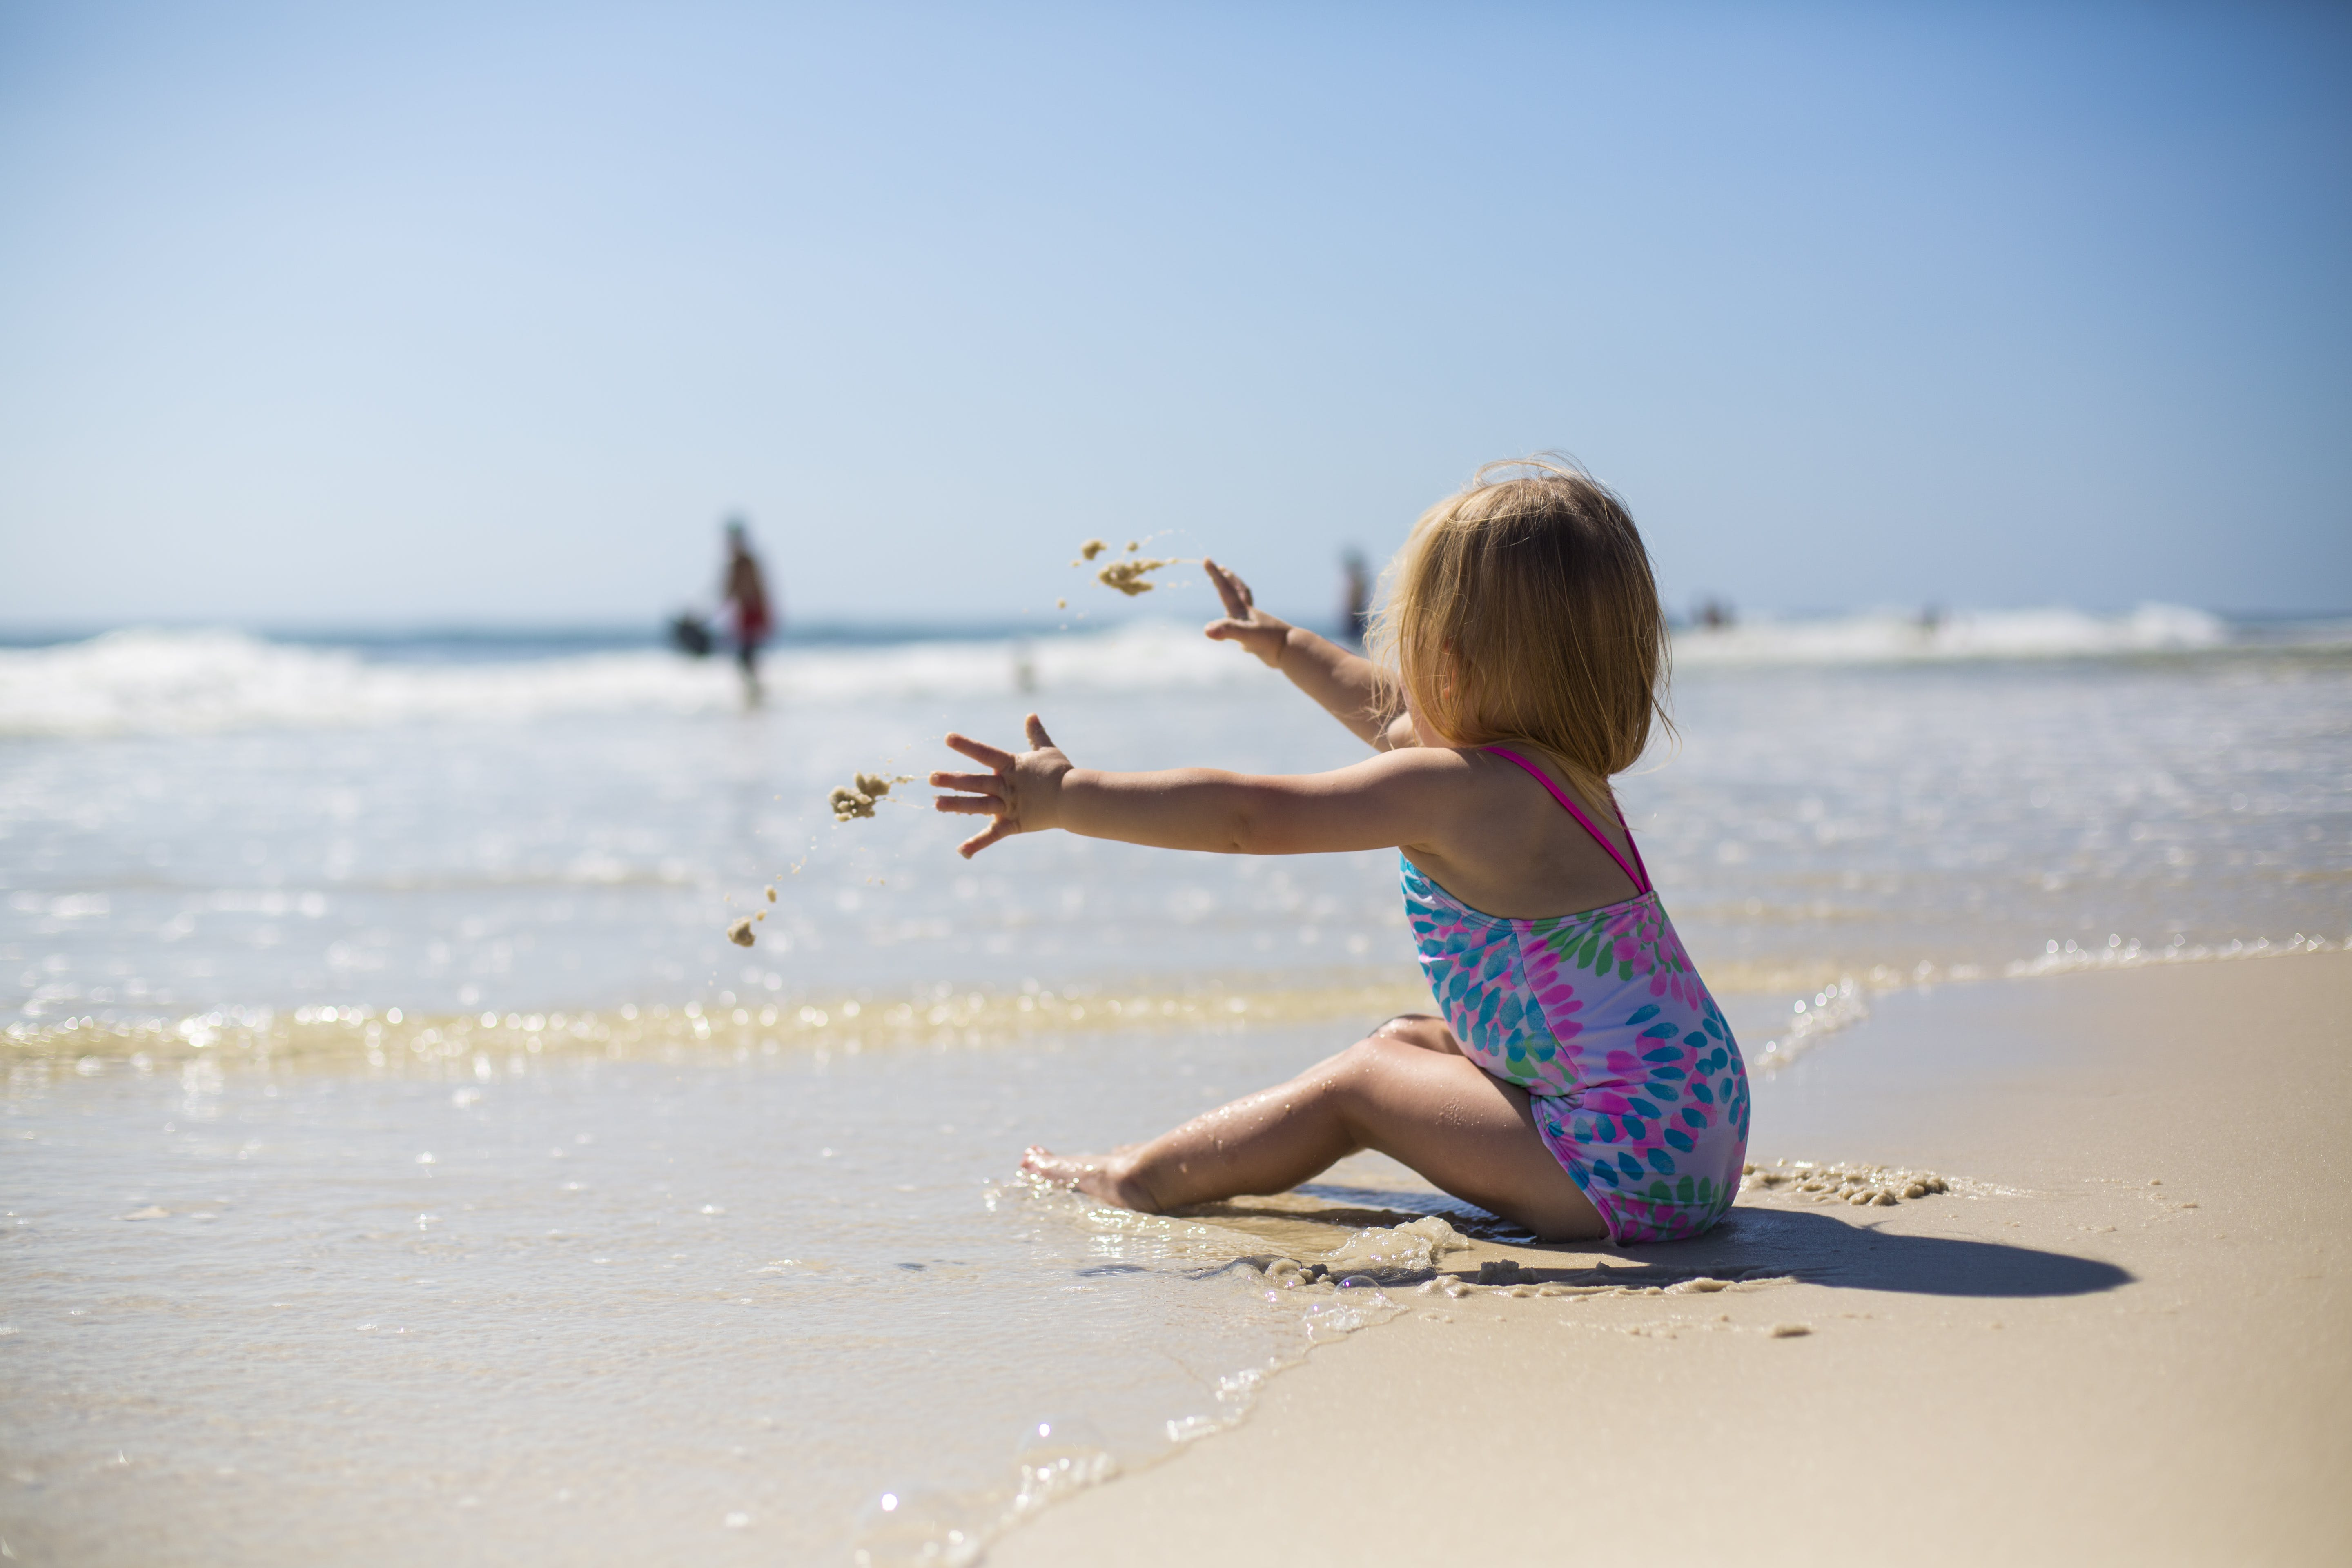 Toddler Girl Sitting on Shore during Day